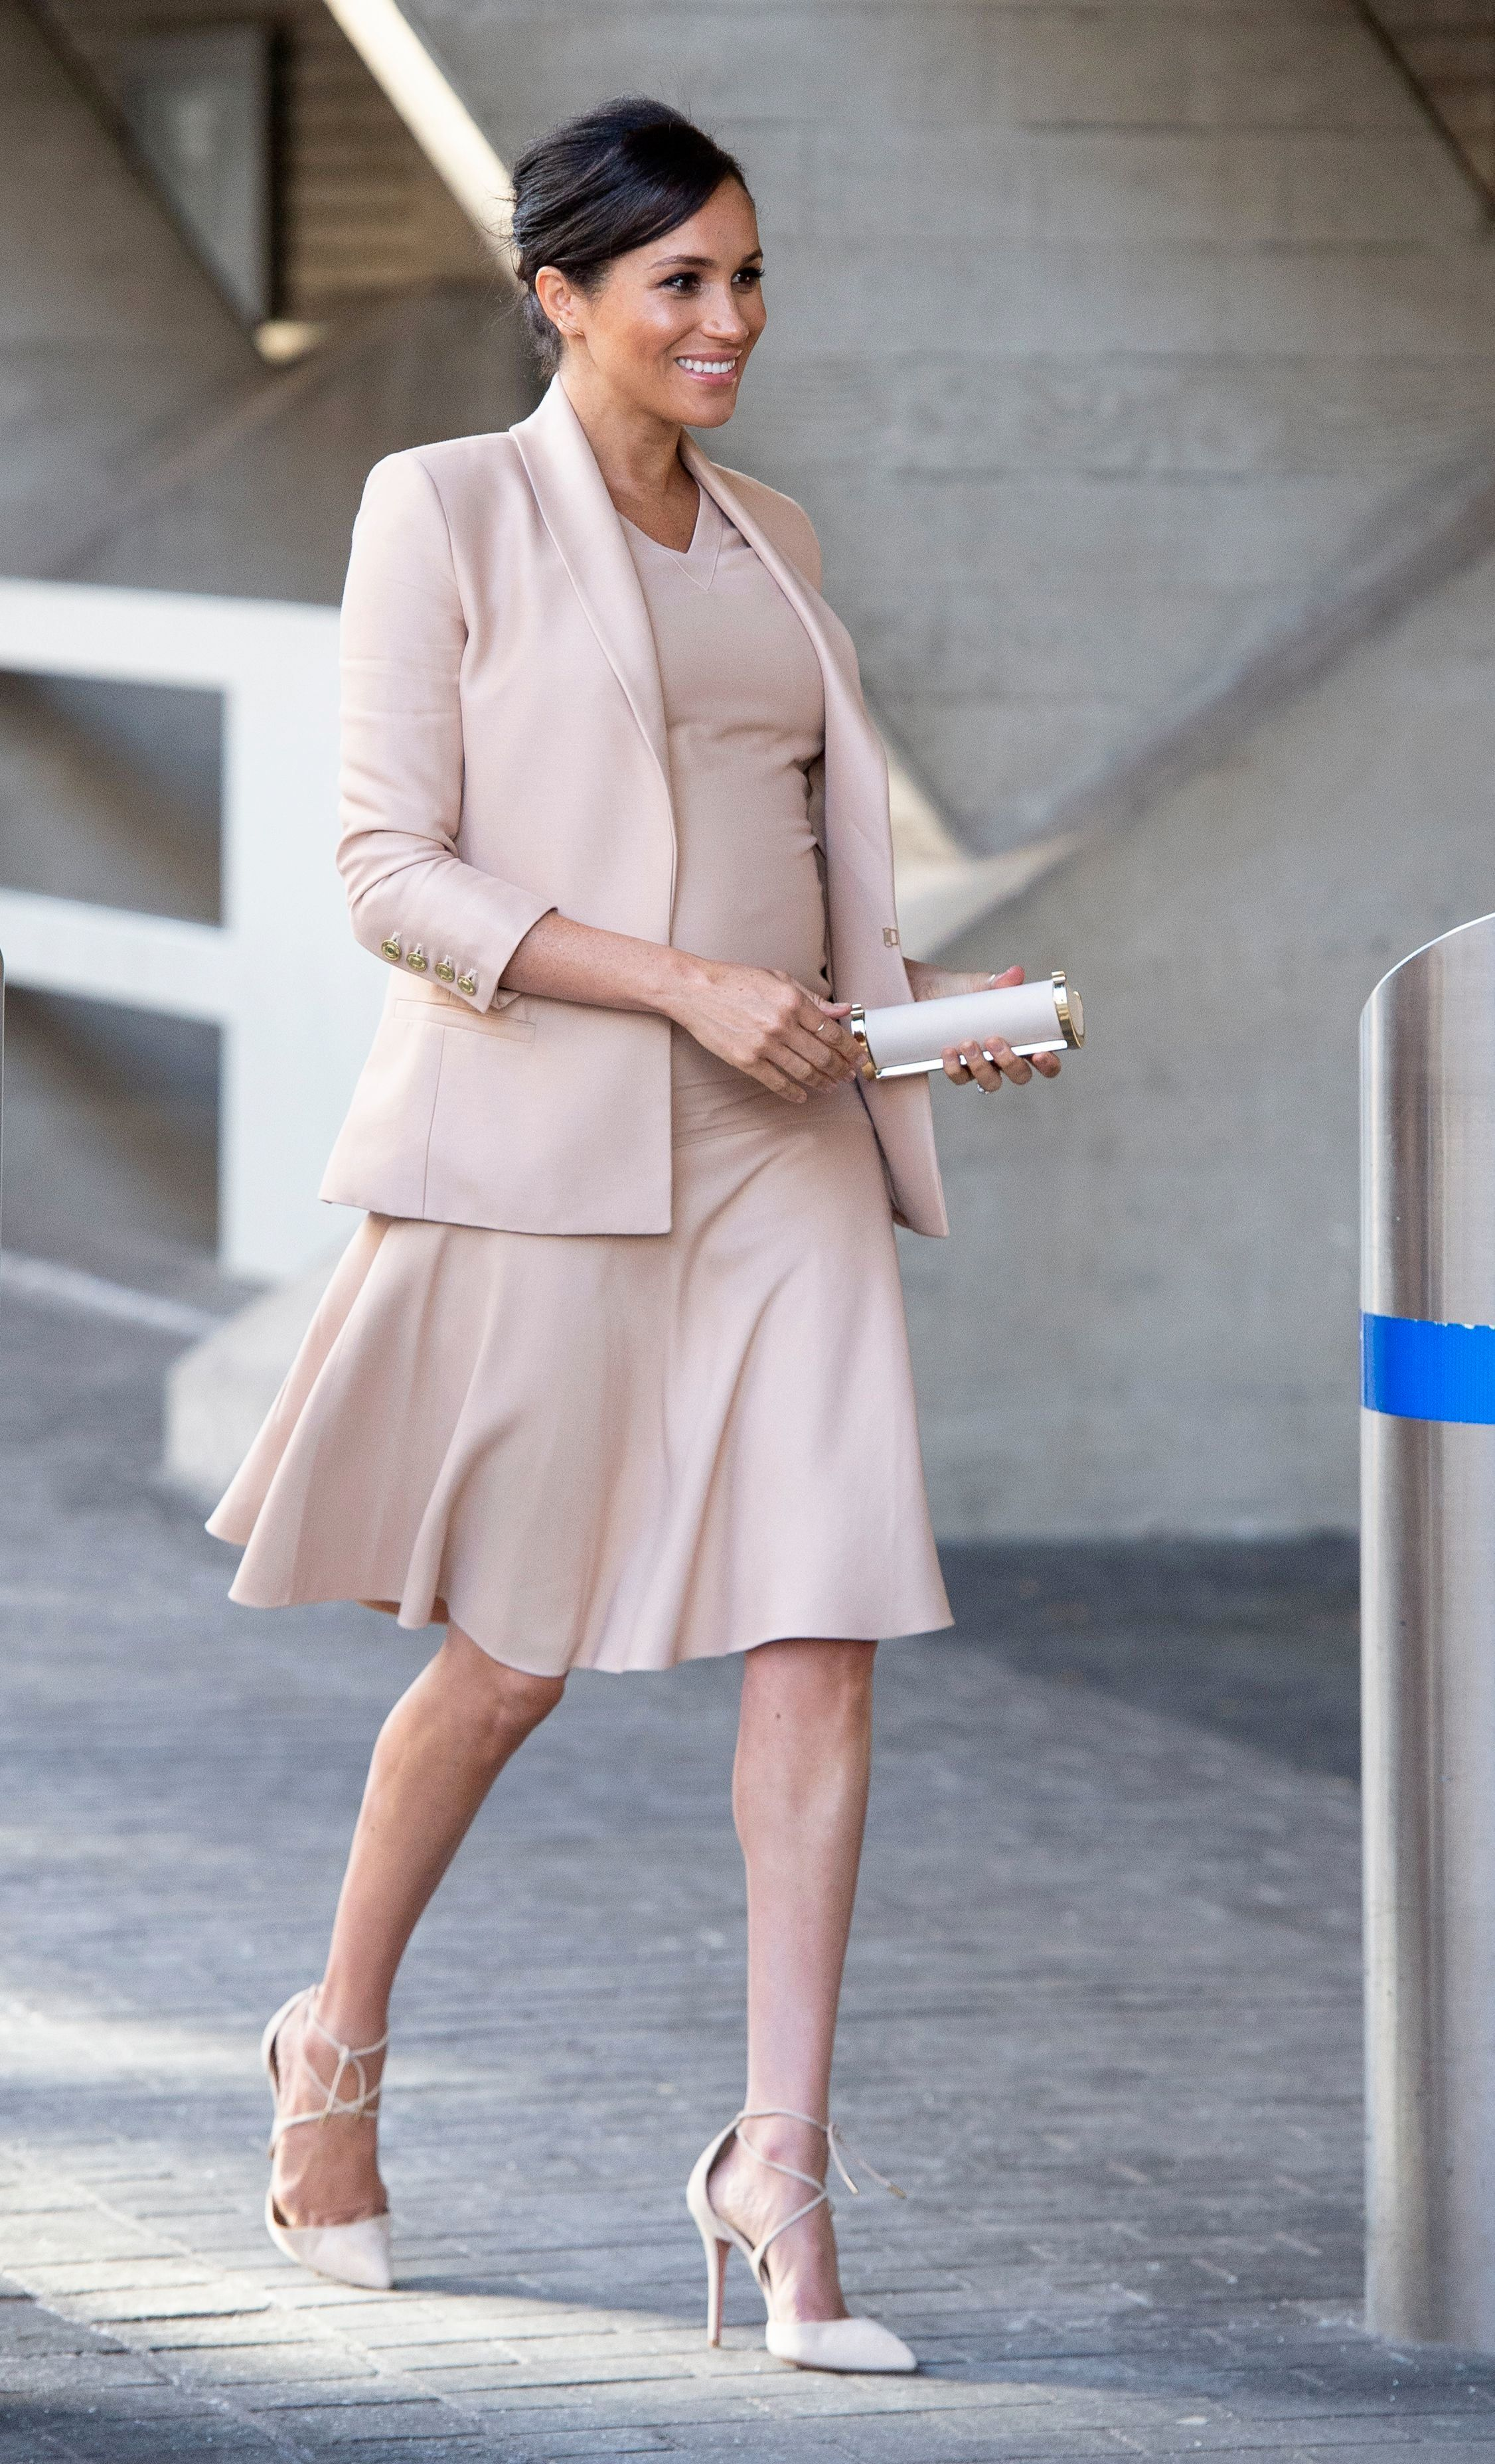 Meghan, Duchess of Sussex visits the National theatre in central London on January 30, 2019 after it was announced that she would be Patron of the theatre. (Photo by Niklas HALLEN / AFP)        (Photo credit should read NIKLAS HALLEN/AFP/Getty Images)